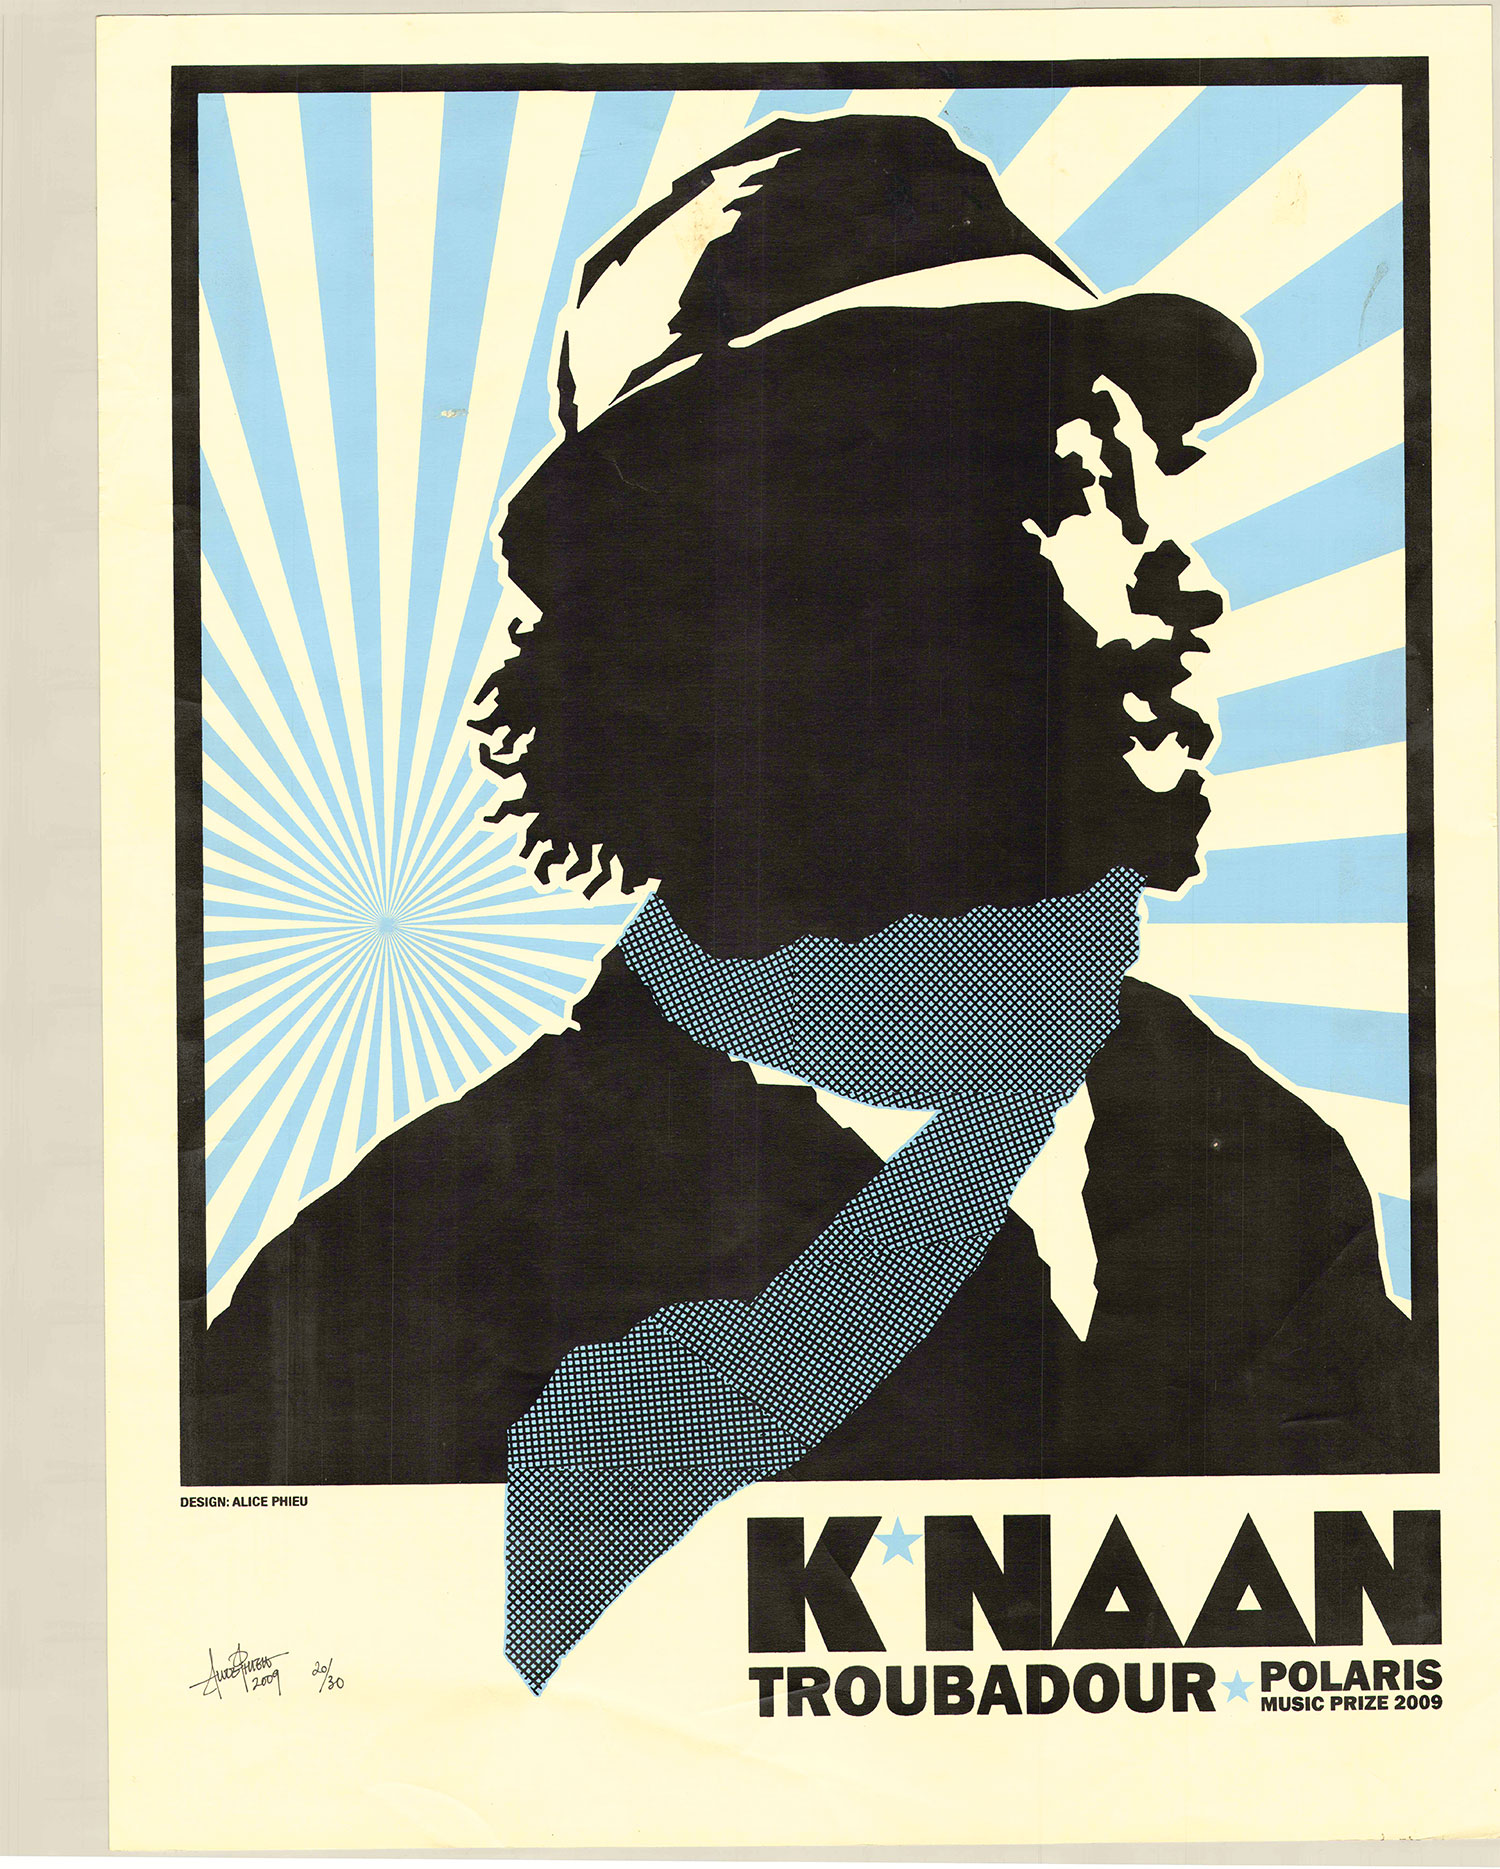 Blockprint silhouette illustration of a man wearing a hat and scarf with colourful beams of light shining behind him.